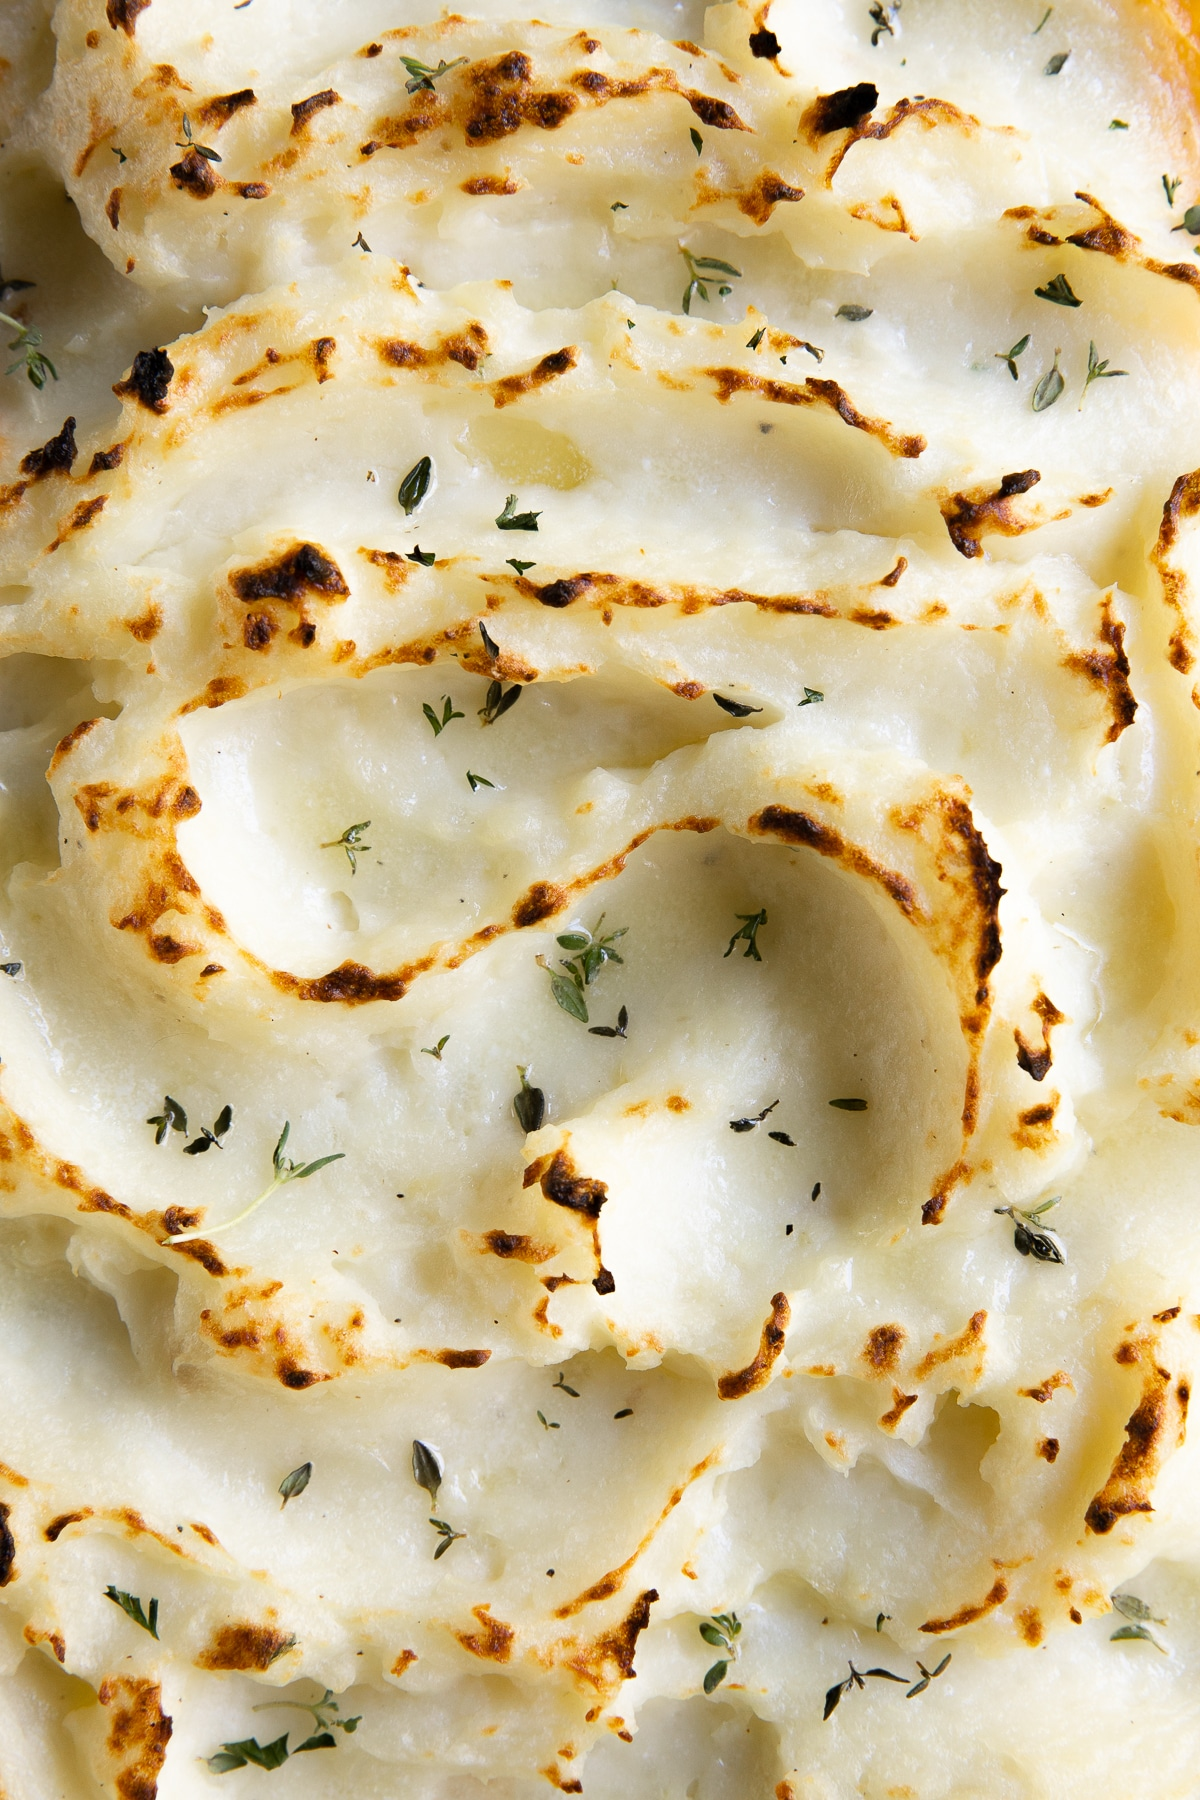 Close up image of the top of a baked shepherd's pie with crispy golden mashed potatoes.